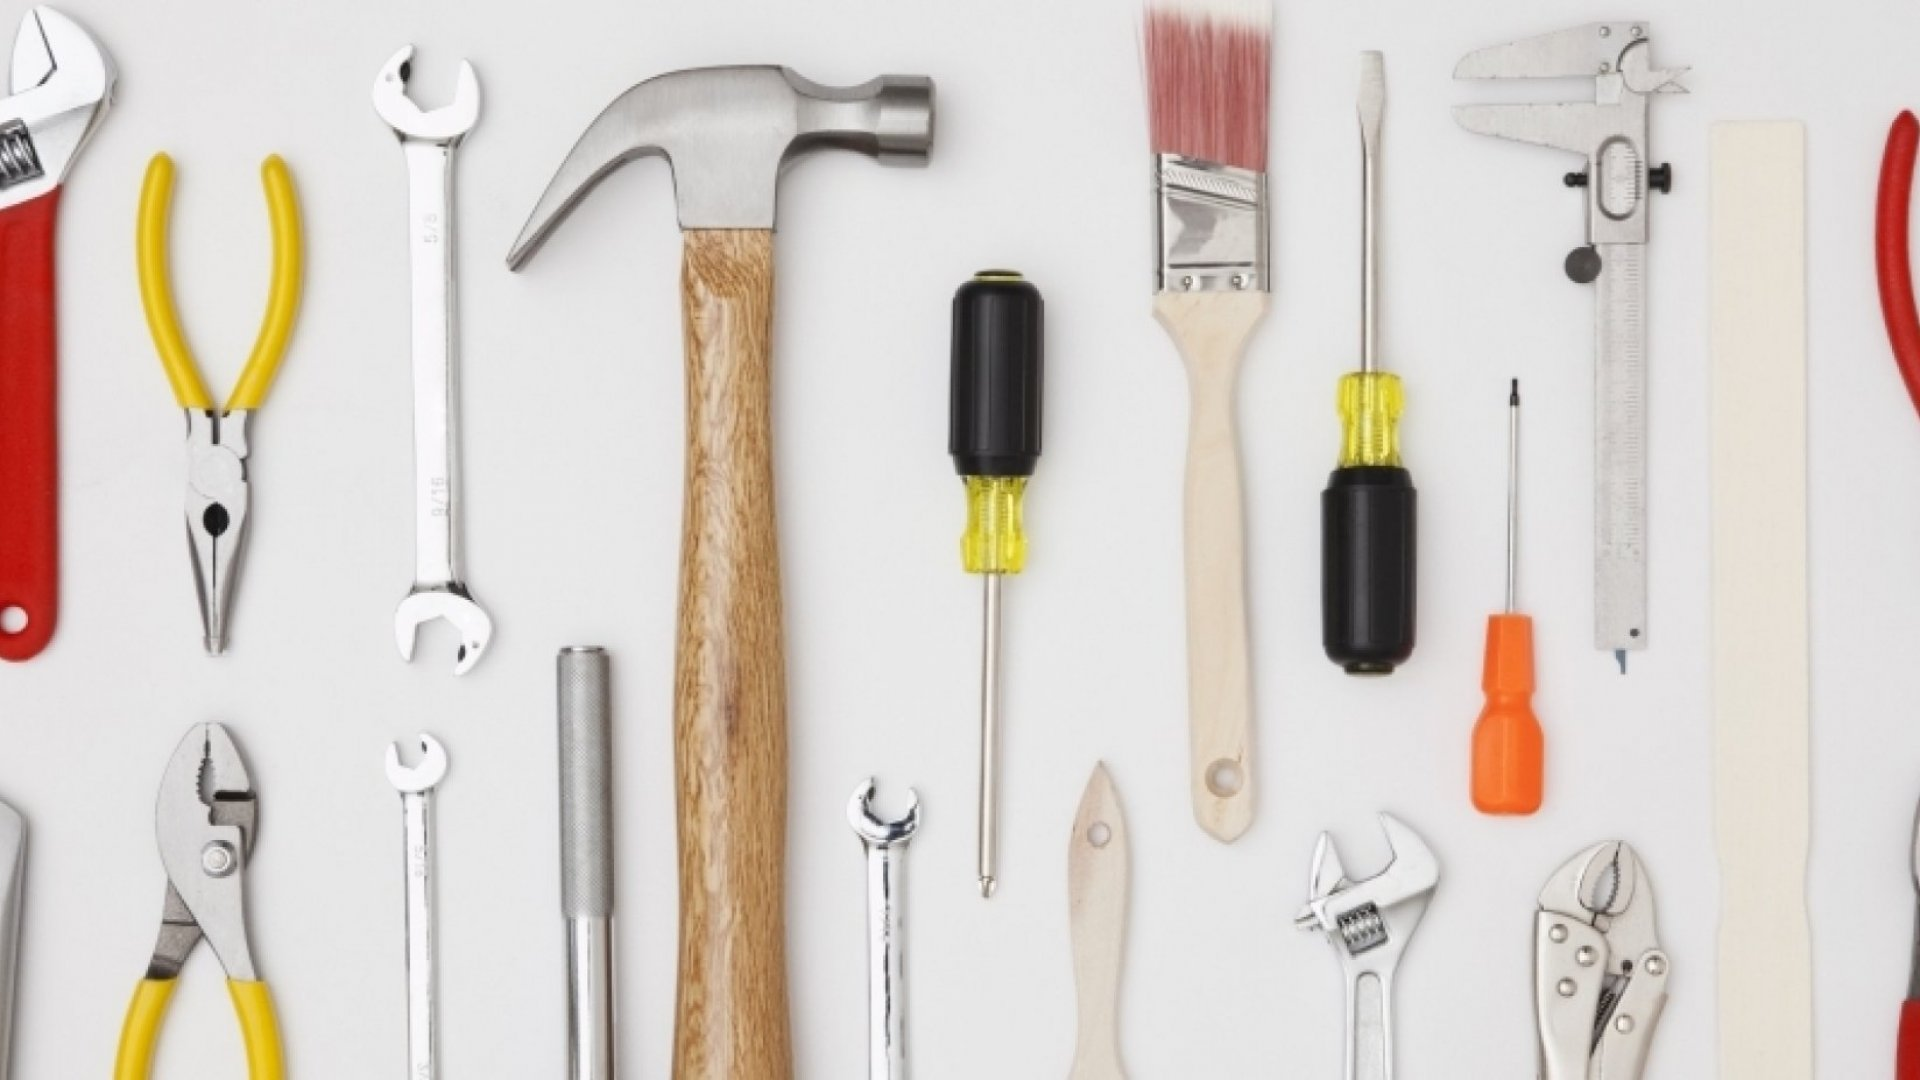 A Founder's Guide for 5 Tools to Get You Started: Part I